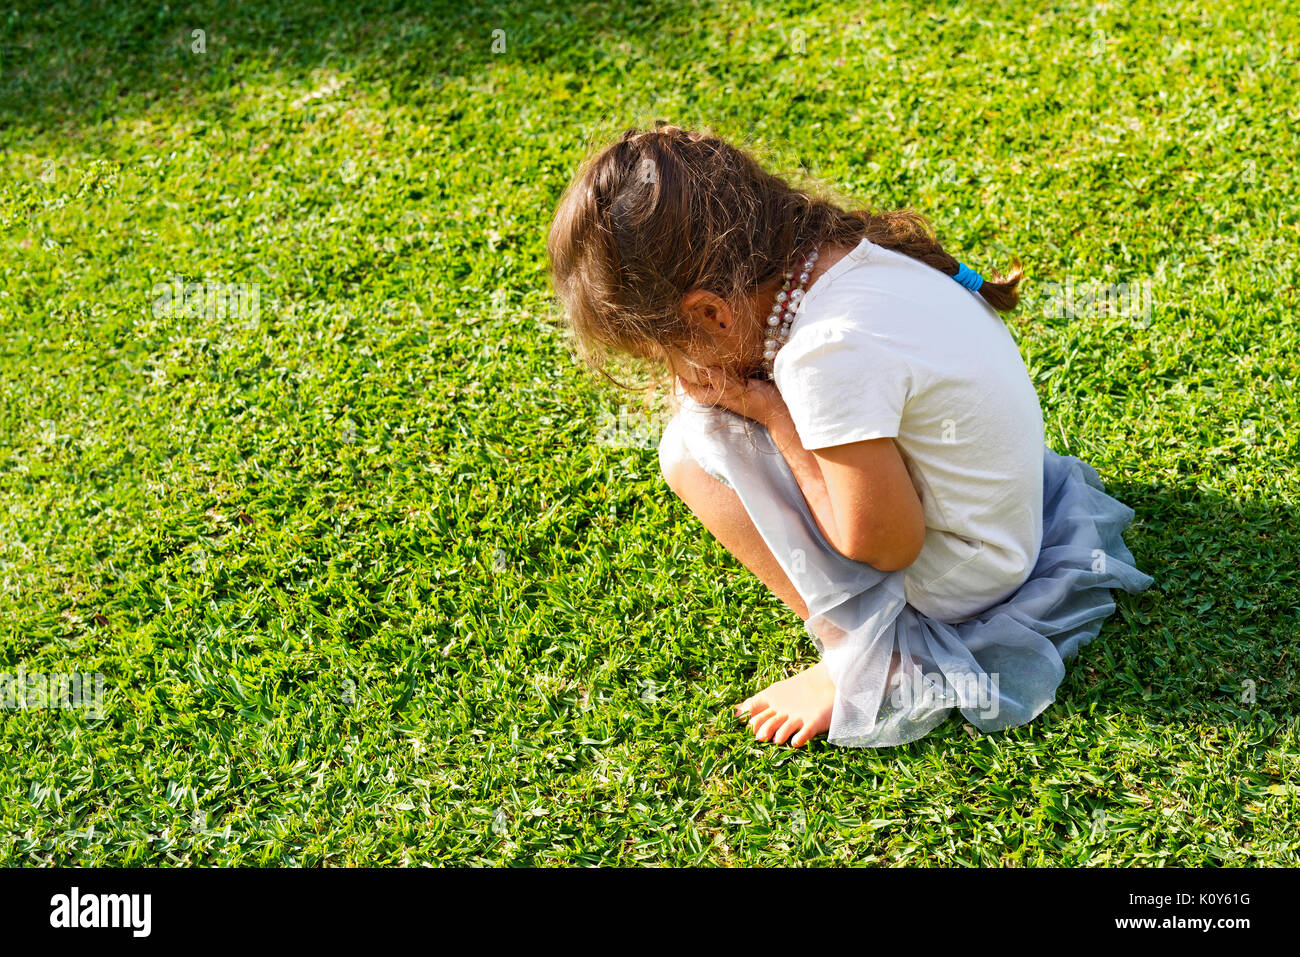 A young girl having a tantrum and crying on the lawn - Stock Image